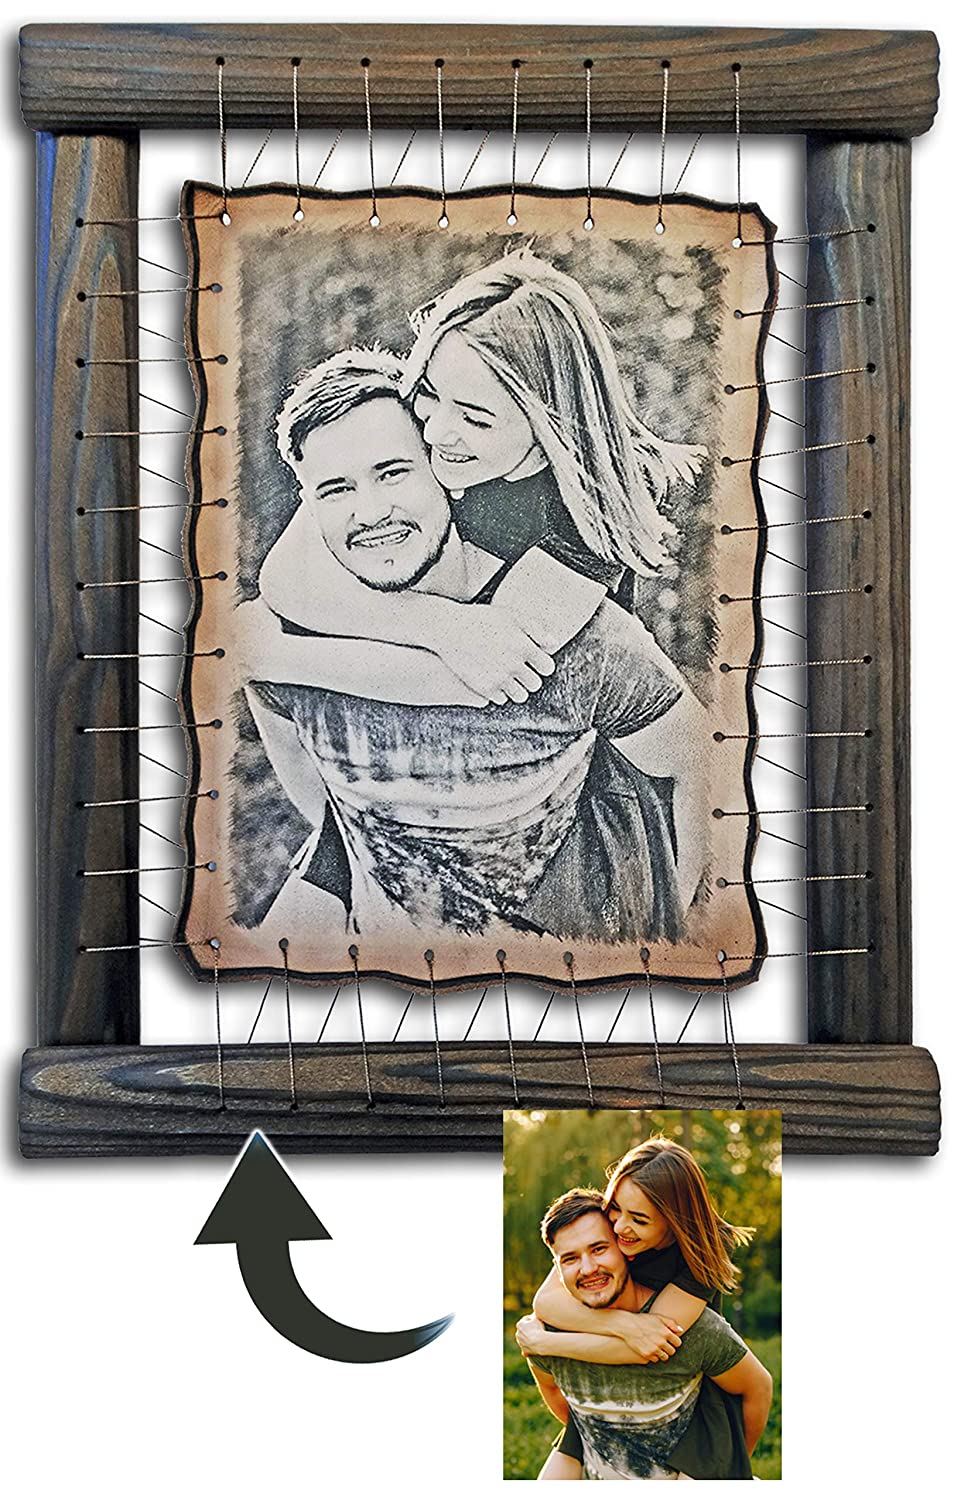 by Artists on Leather Your Photo Hand Engraved Etched 2 Year Anniversary Gifts For Boyfriend RARE Pyrography Handmade Technique